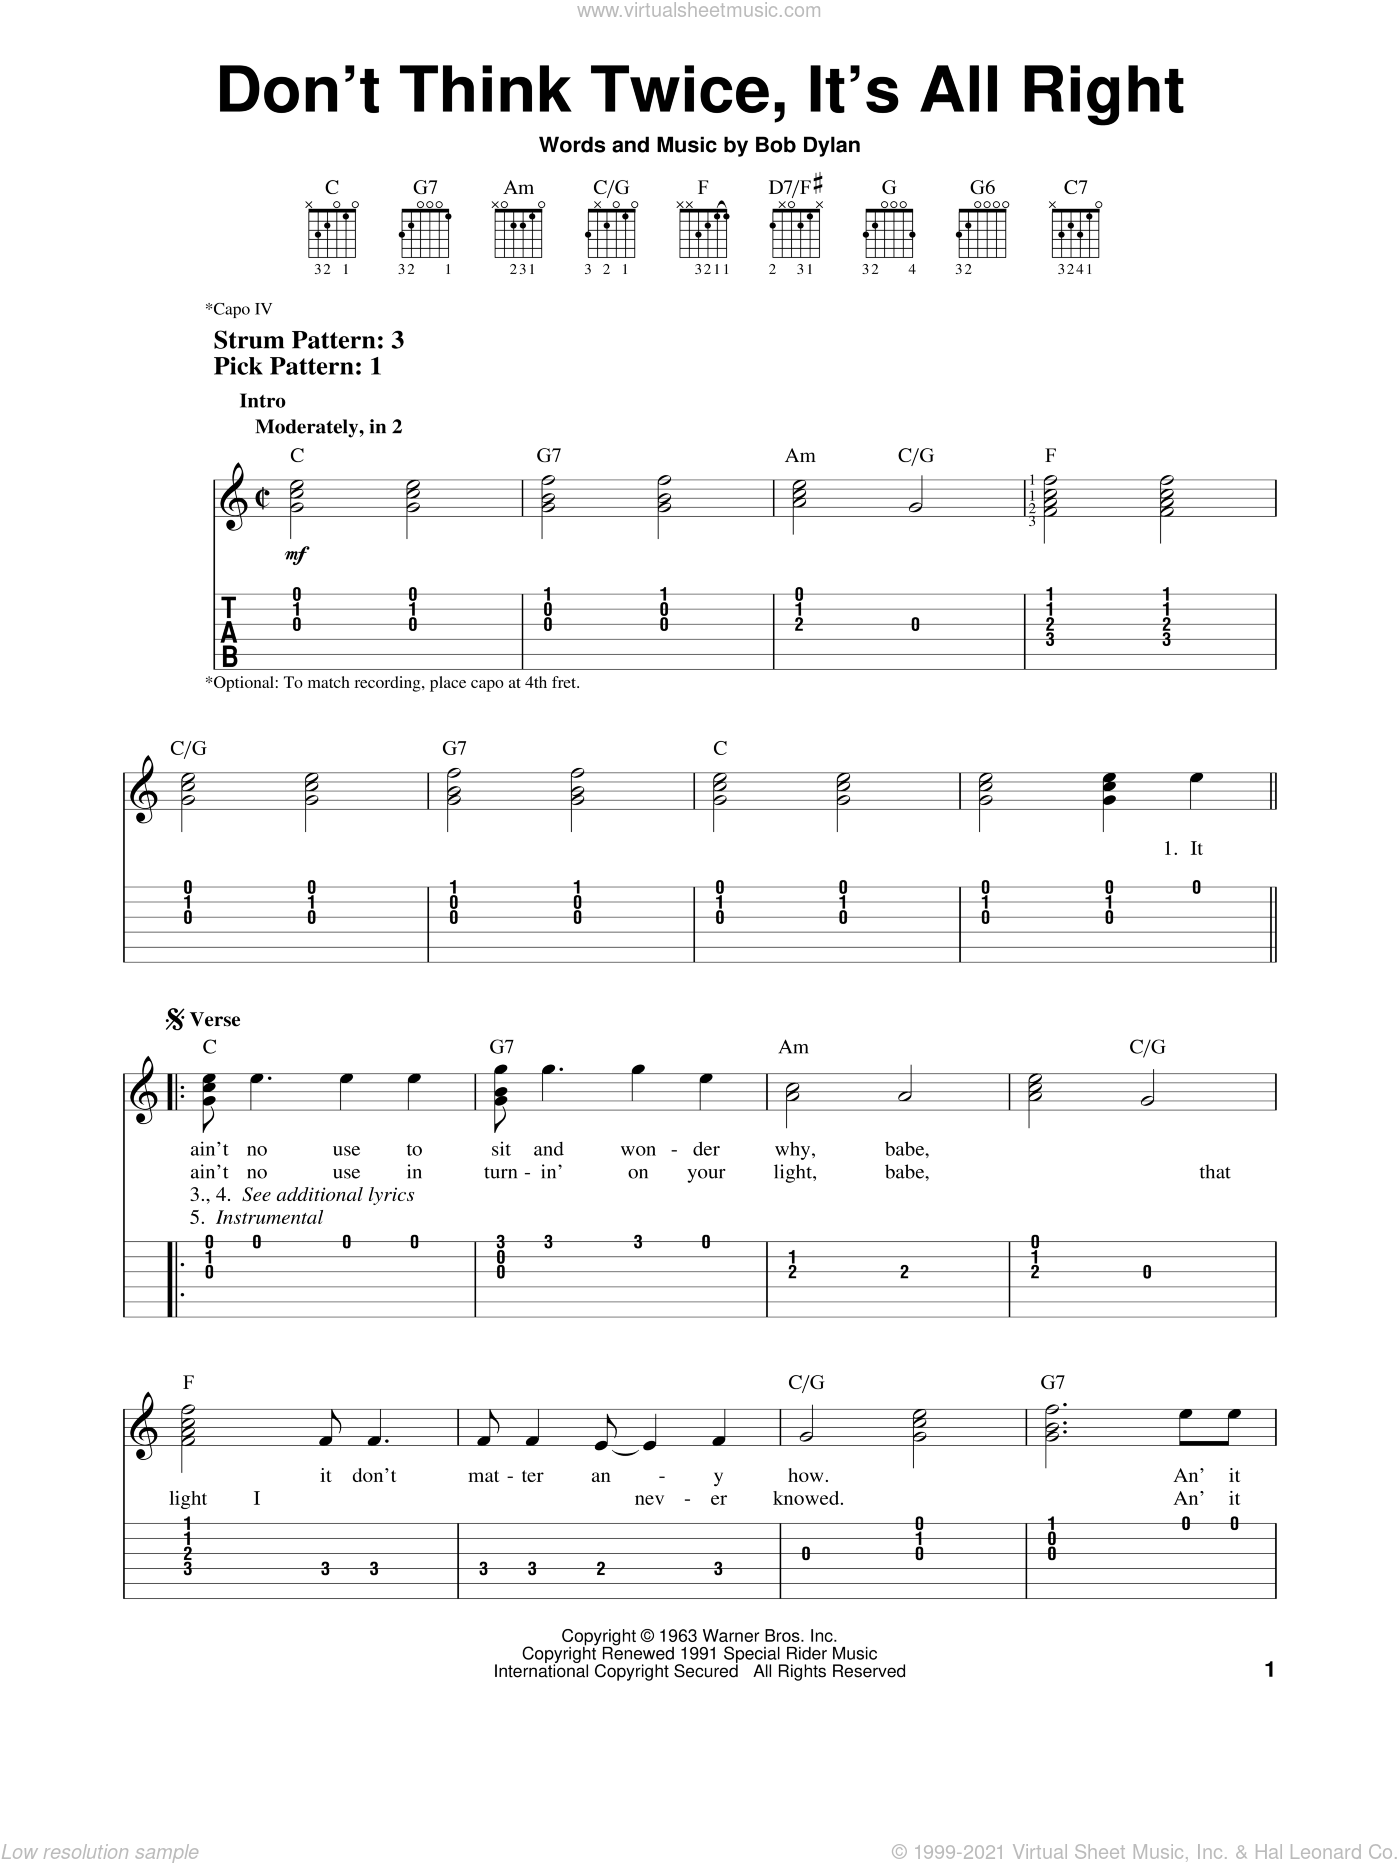 Don't Think Twice, It's All Right sheet music for guitar solo (easy tablature) by Bob Dylan and Peter, Paul & Mary, easy guitar (easy tablature). Score Image Preview.